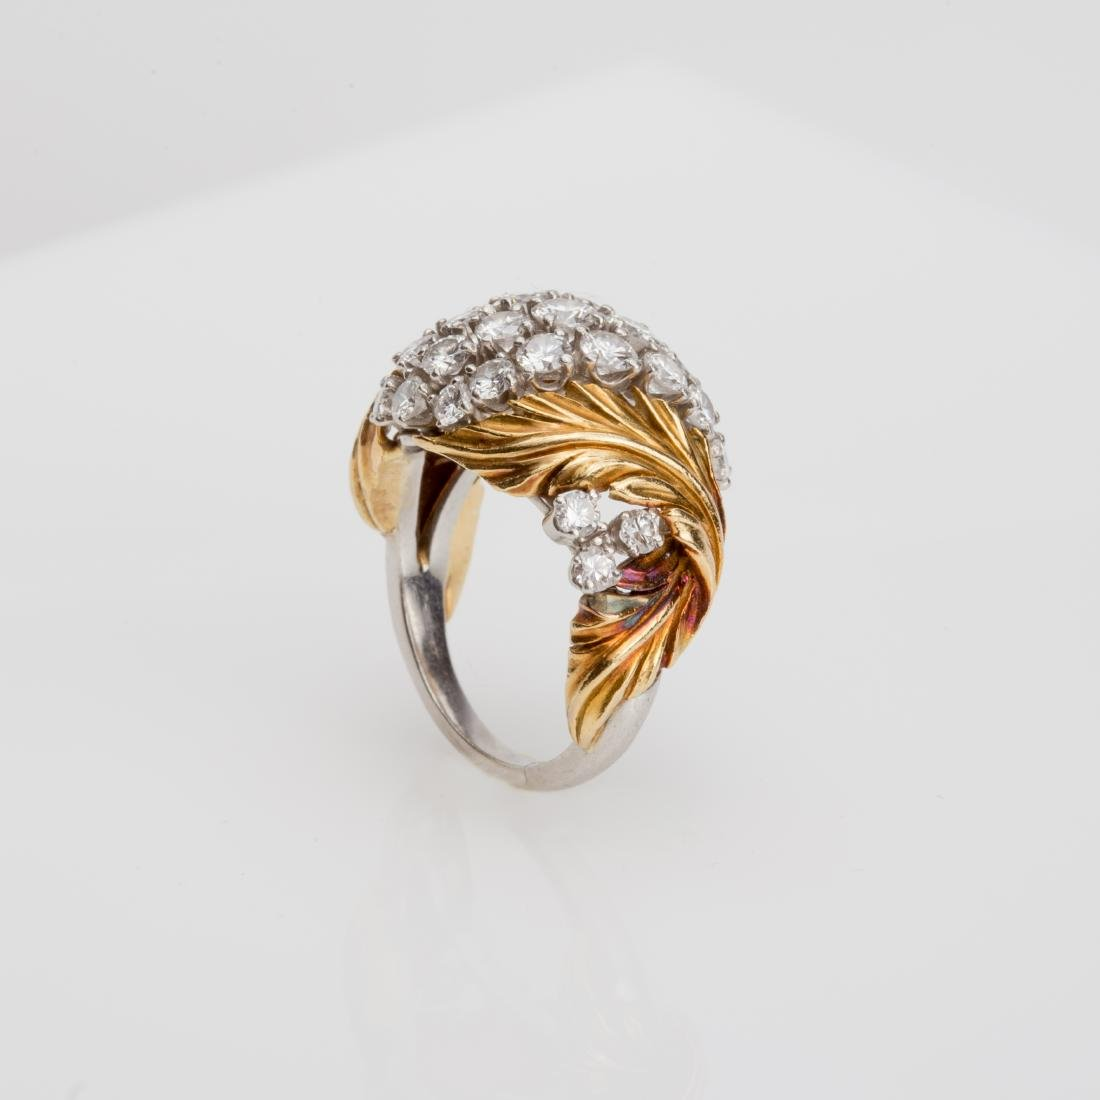 PLATINUM & 18K YELLOW GOLD DIAMOND COCKTAIL RING